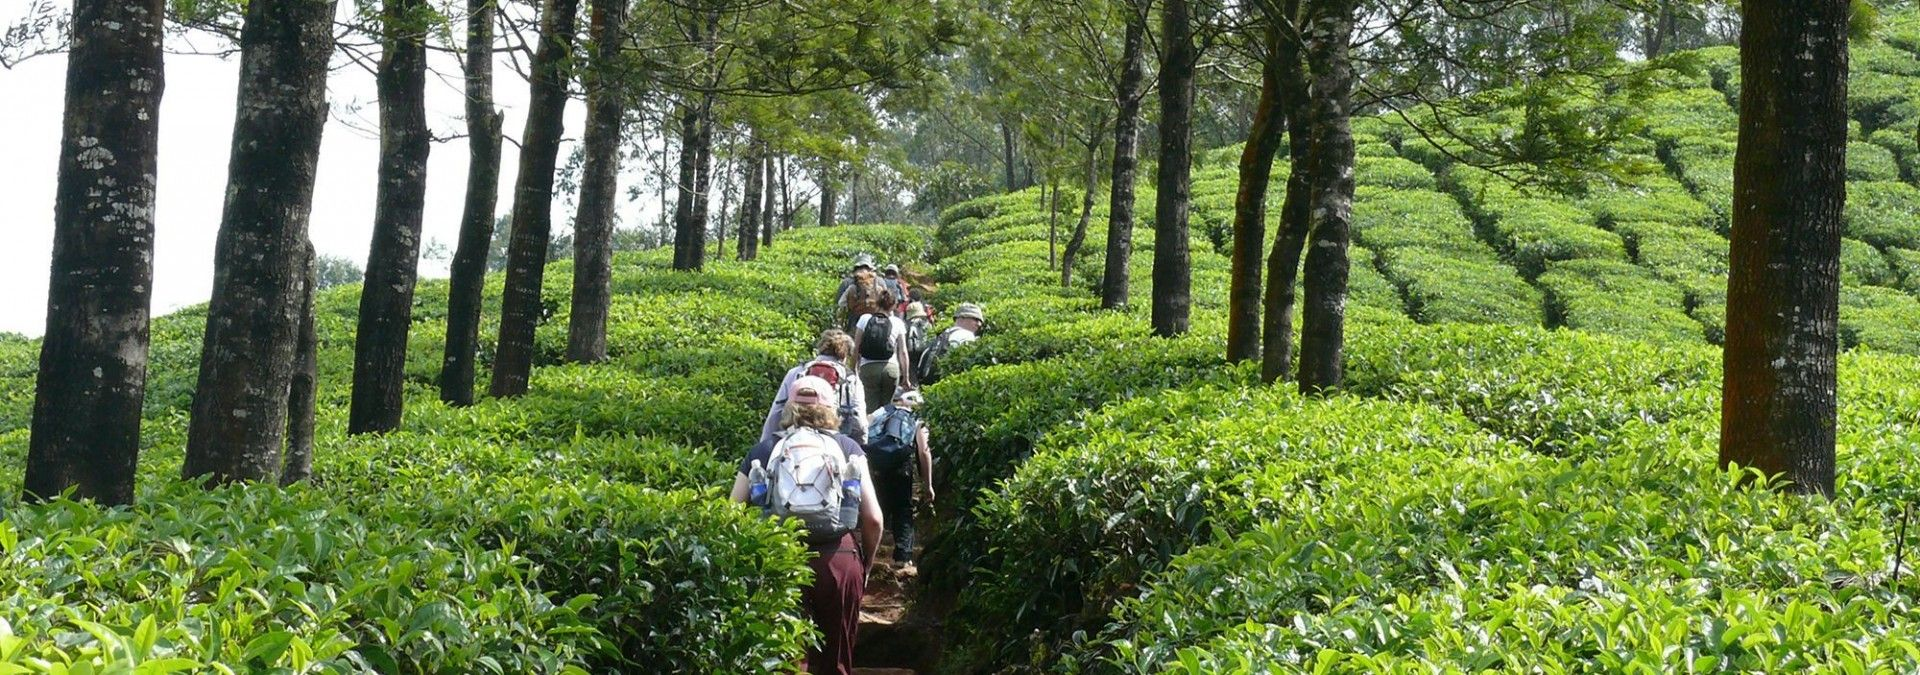 Following tree-lined tracks through tea plantations